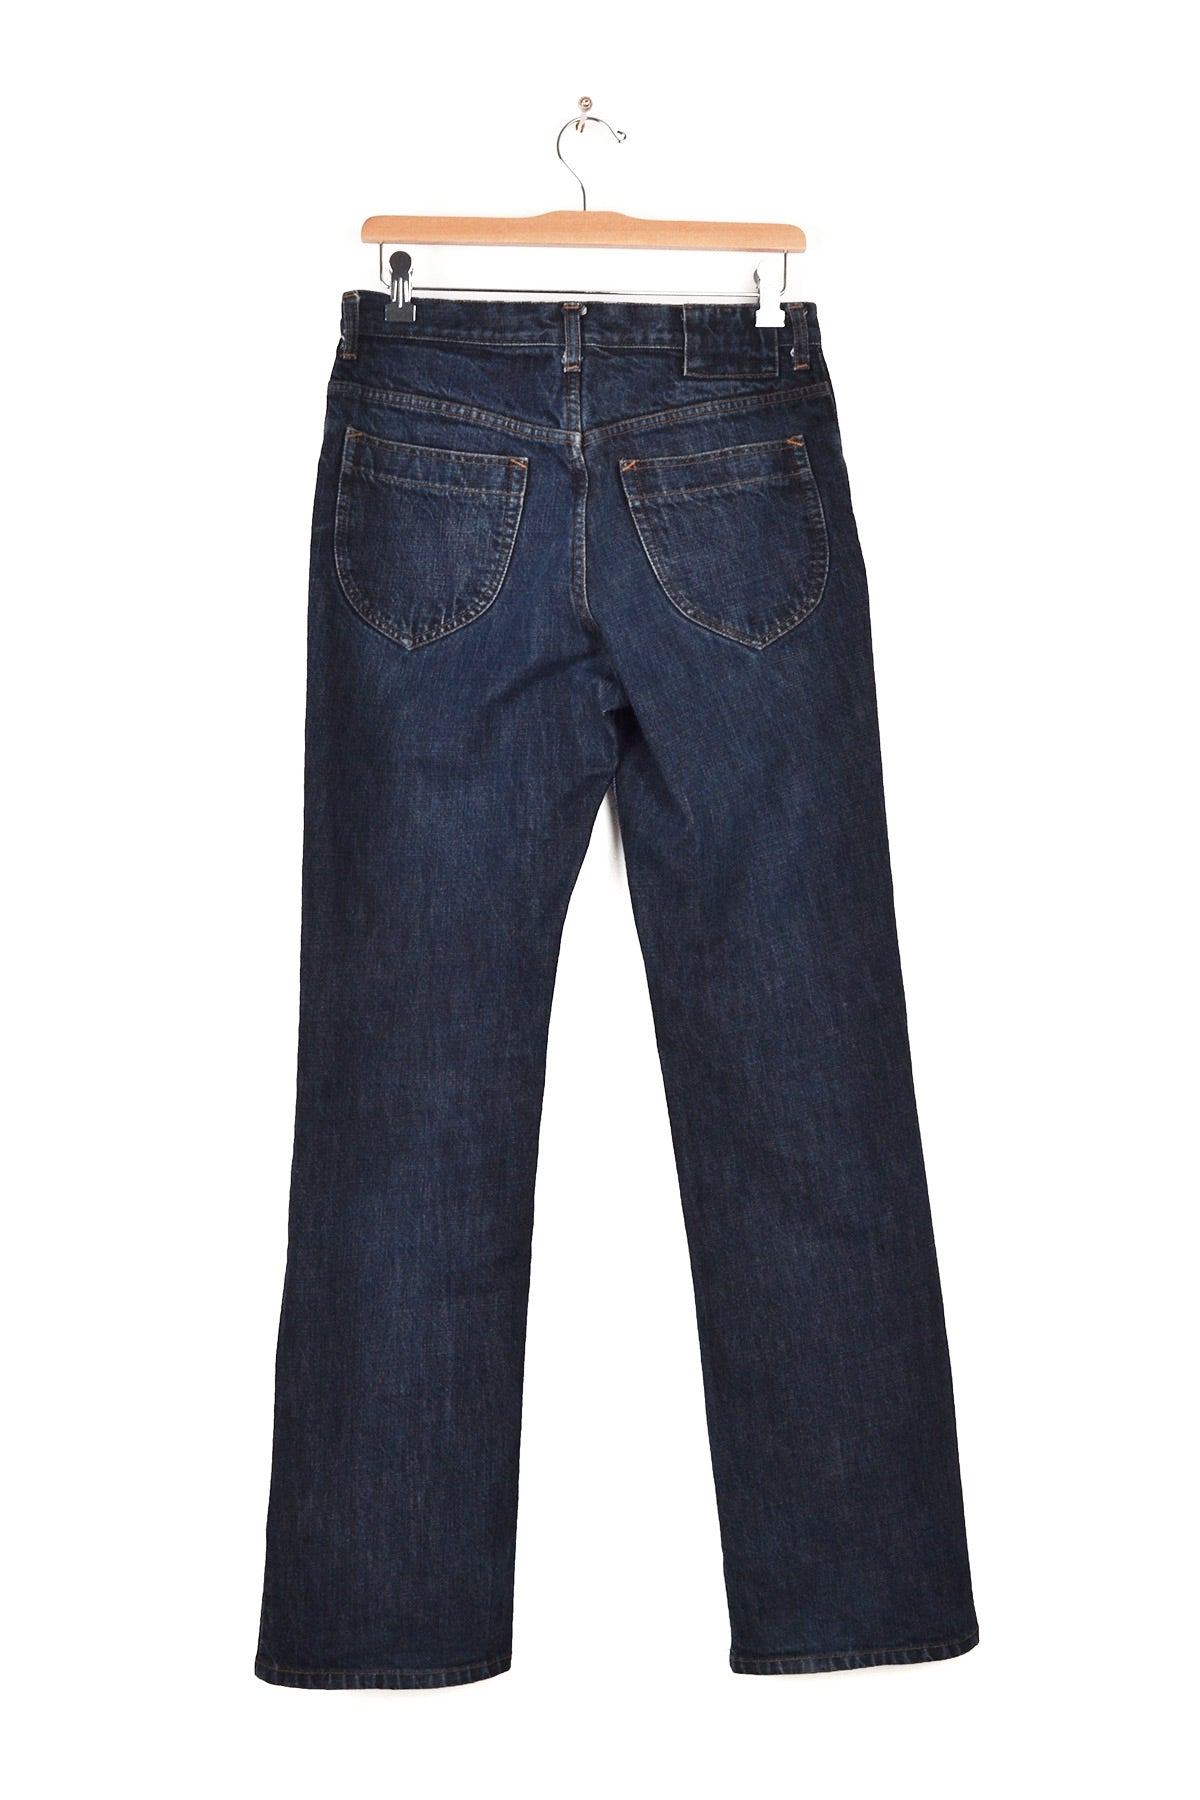 2000 A/W 5-POCKET TROUSERS IN WASHED DENIM